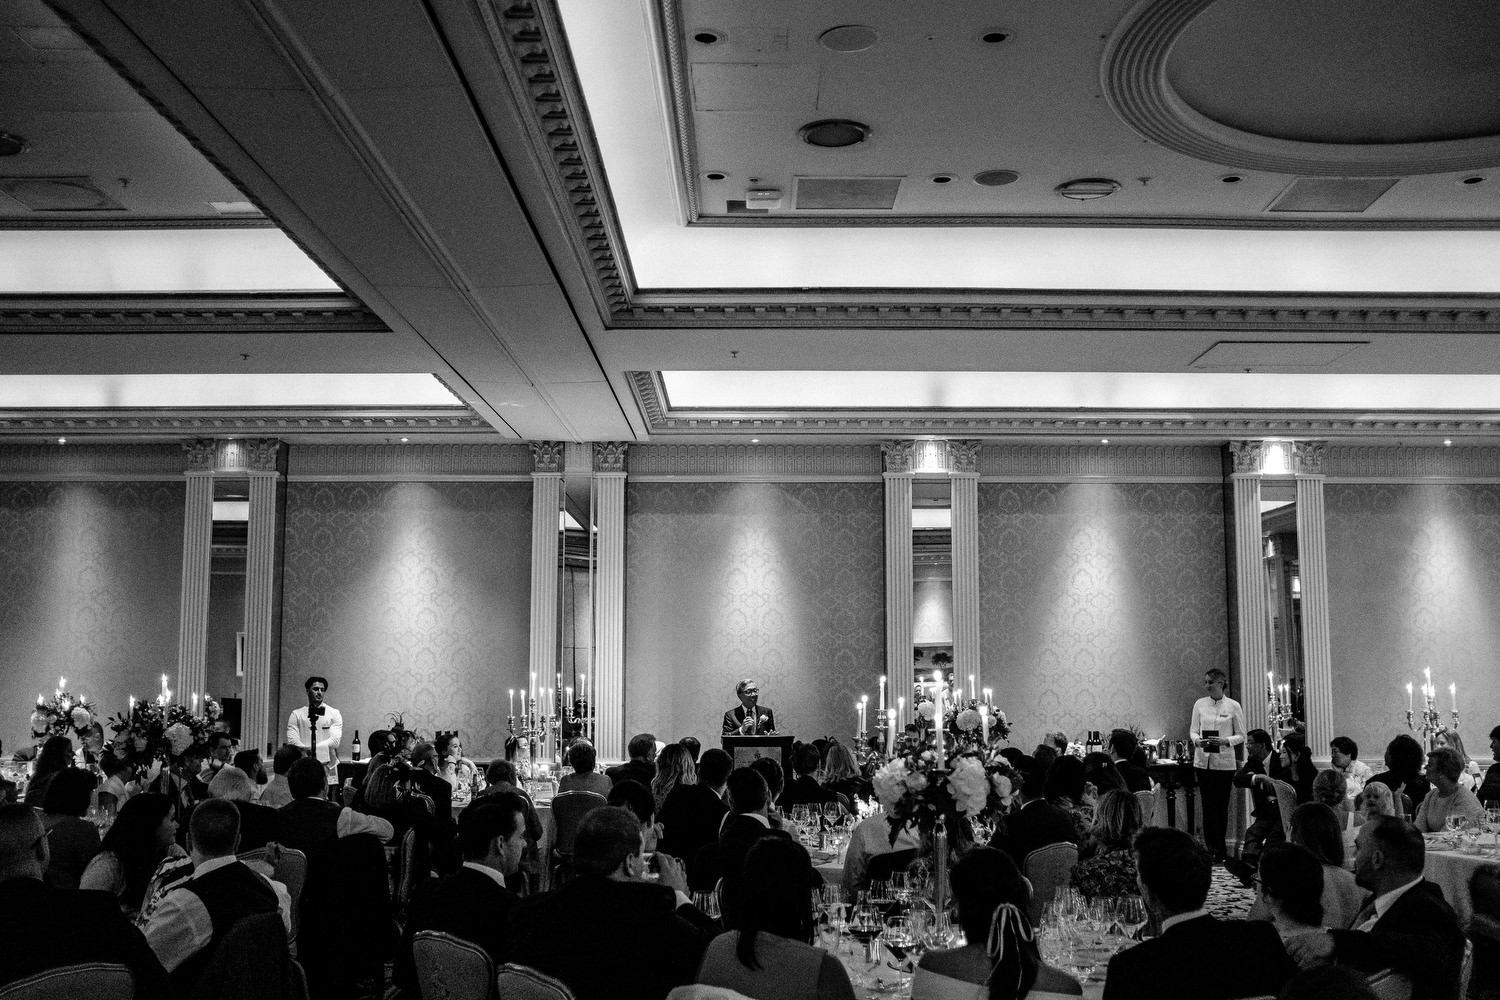 dmp0571_photographer_wedding_dublin_david_mcclelland_candid_photography_fujifilm_shelbourne_reception_documentary